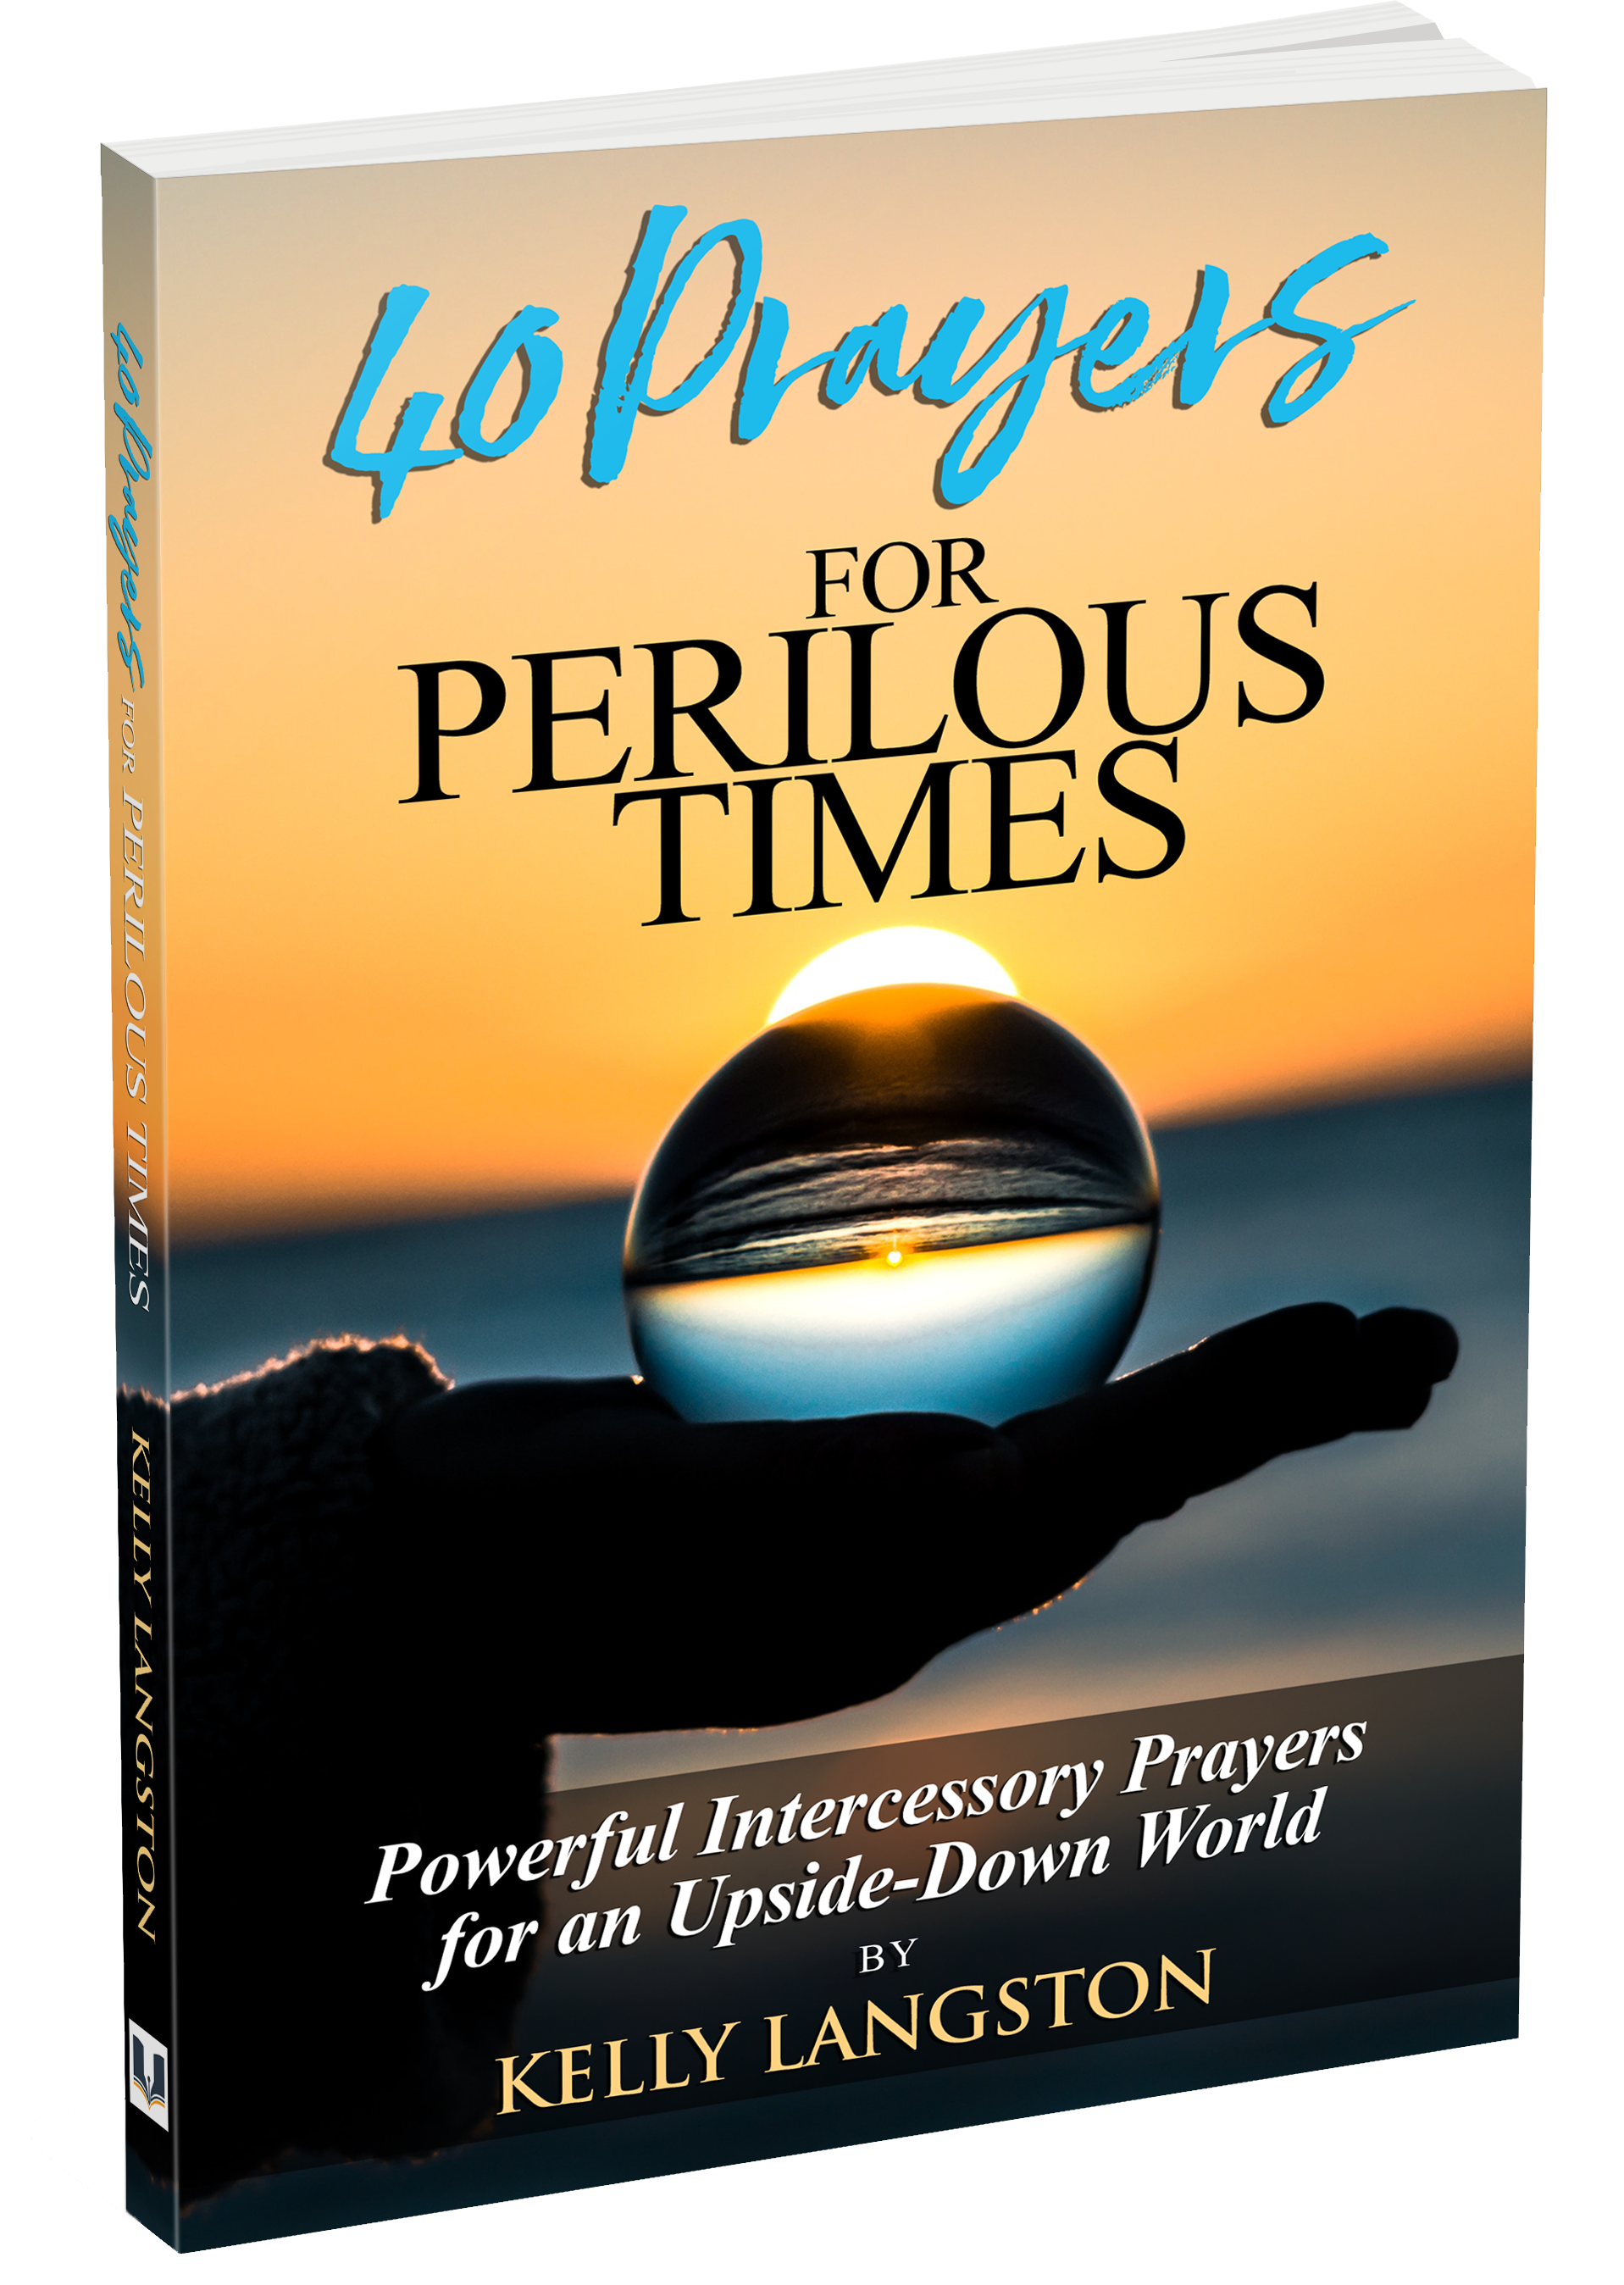 40 Prayers for Perilous Times: Powerful Intercessory Prayers for an Upside-Down World